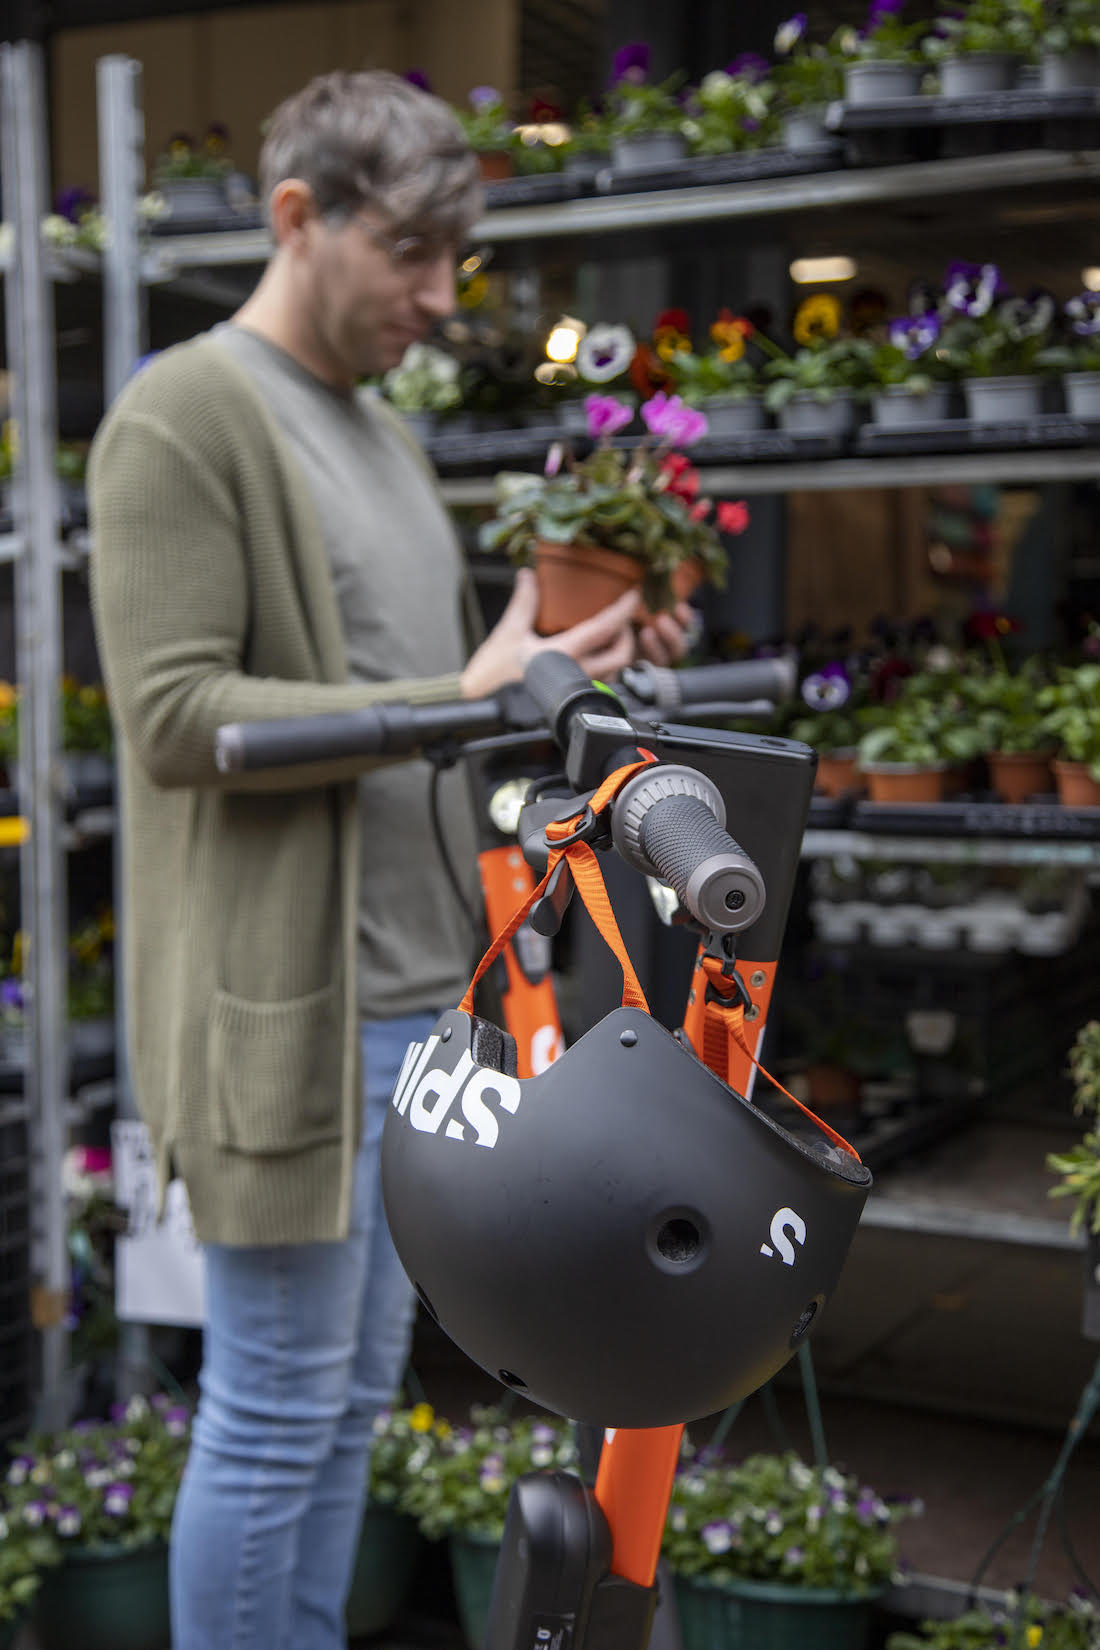 A scooter with a helmet in front of a man shopping for flowers.